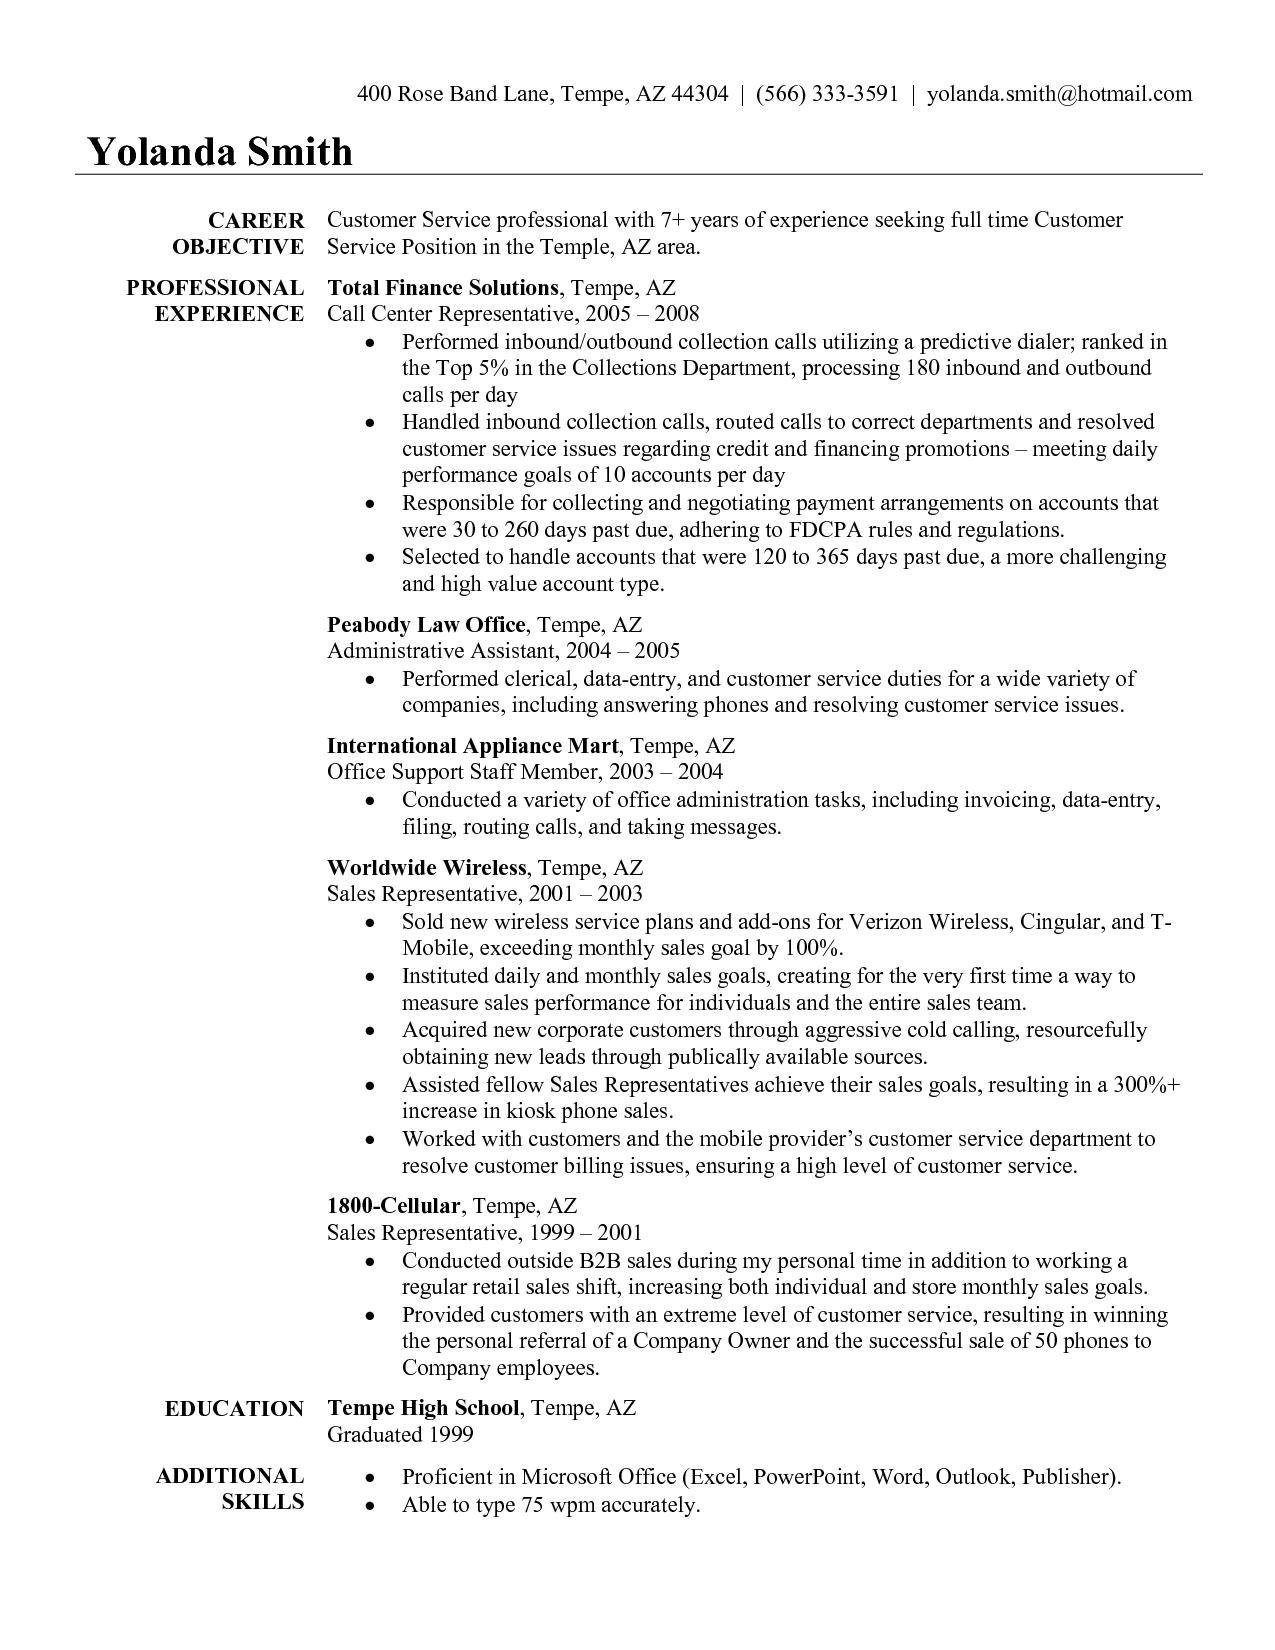 Awesome Traffic Customer Resume Examples,,customer Service Resume Examples,,customer  Service Resume Examples  Resume Objective Example For Customer Service